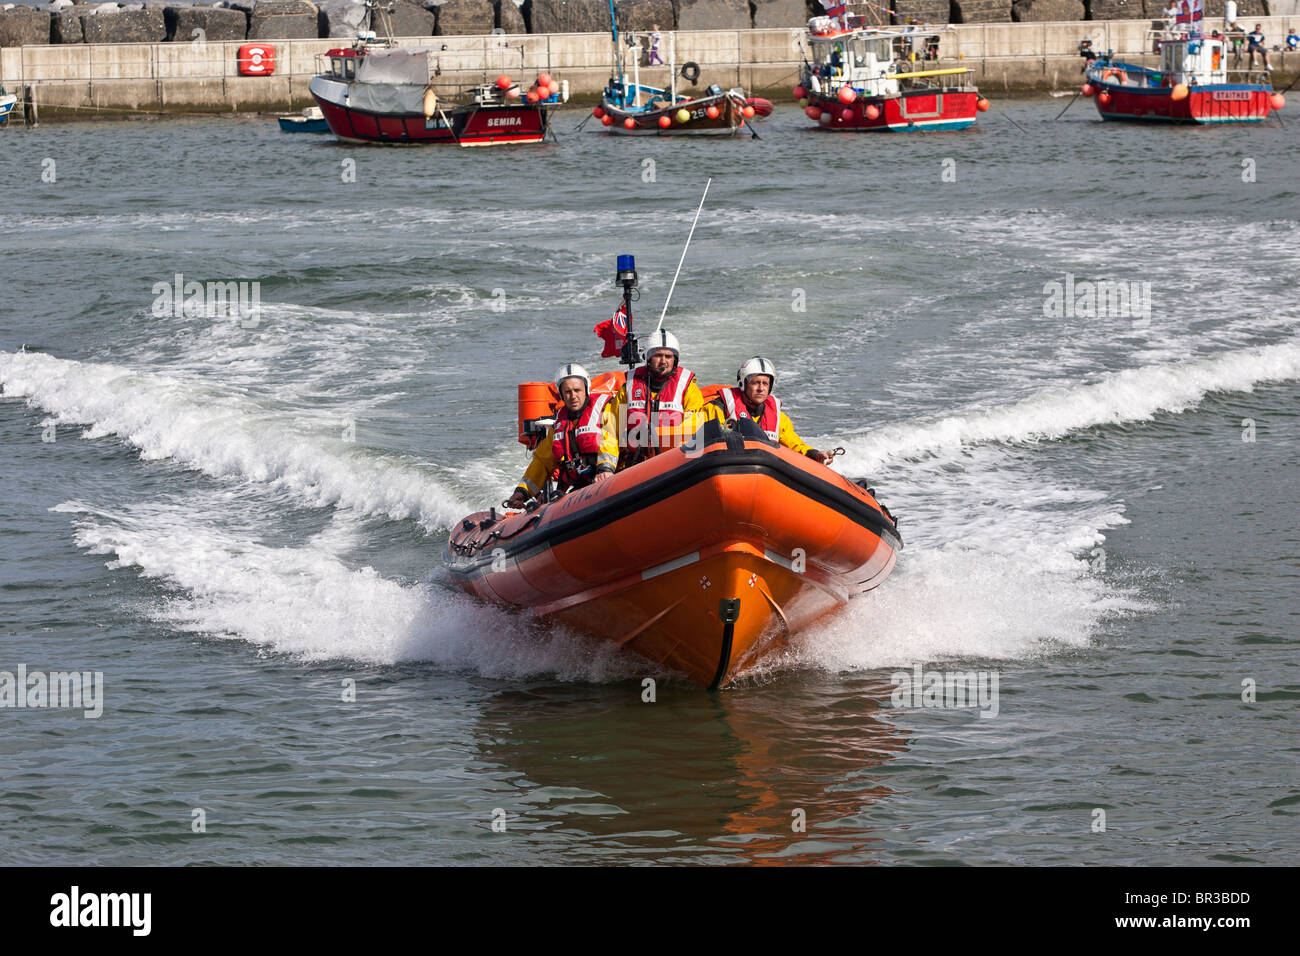 Atlantic 75 Class B RNLI Lifeboat, in the North Sea, off Staithes, North Yorkshire. - Stock Image